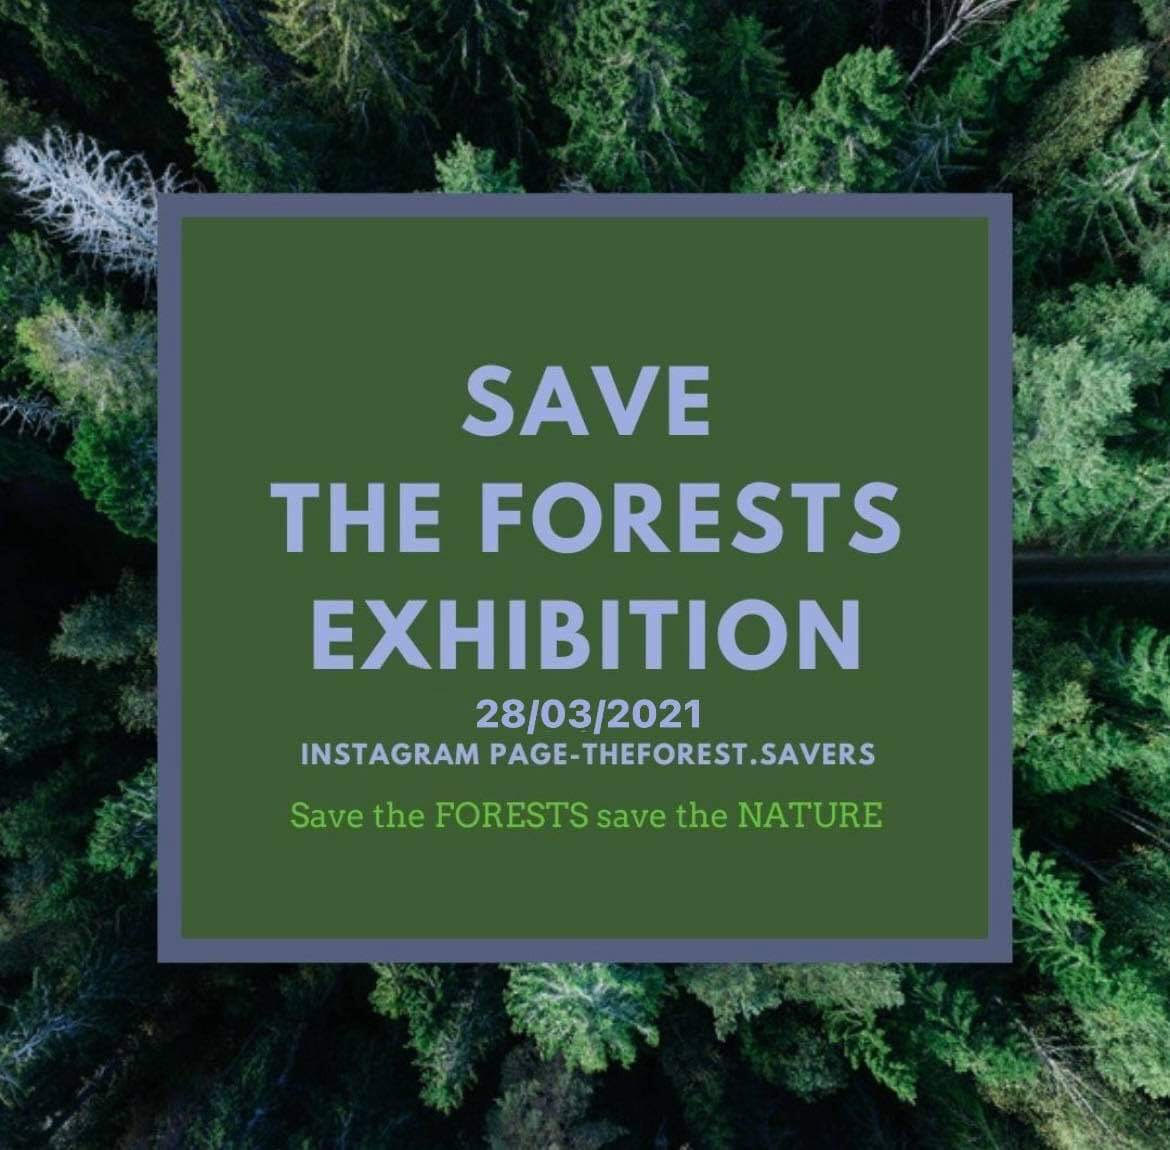 theforest.savers